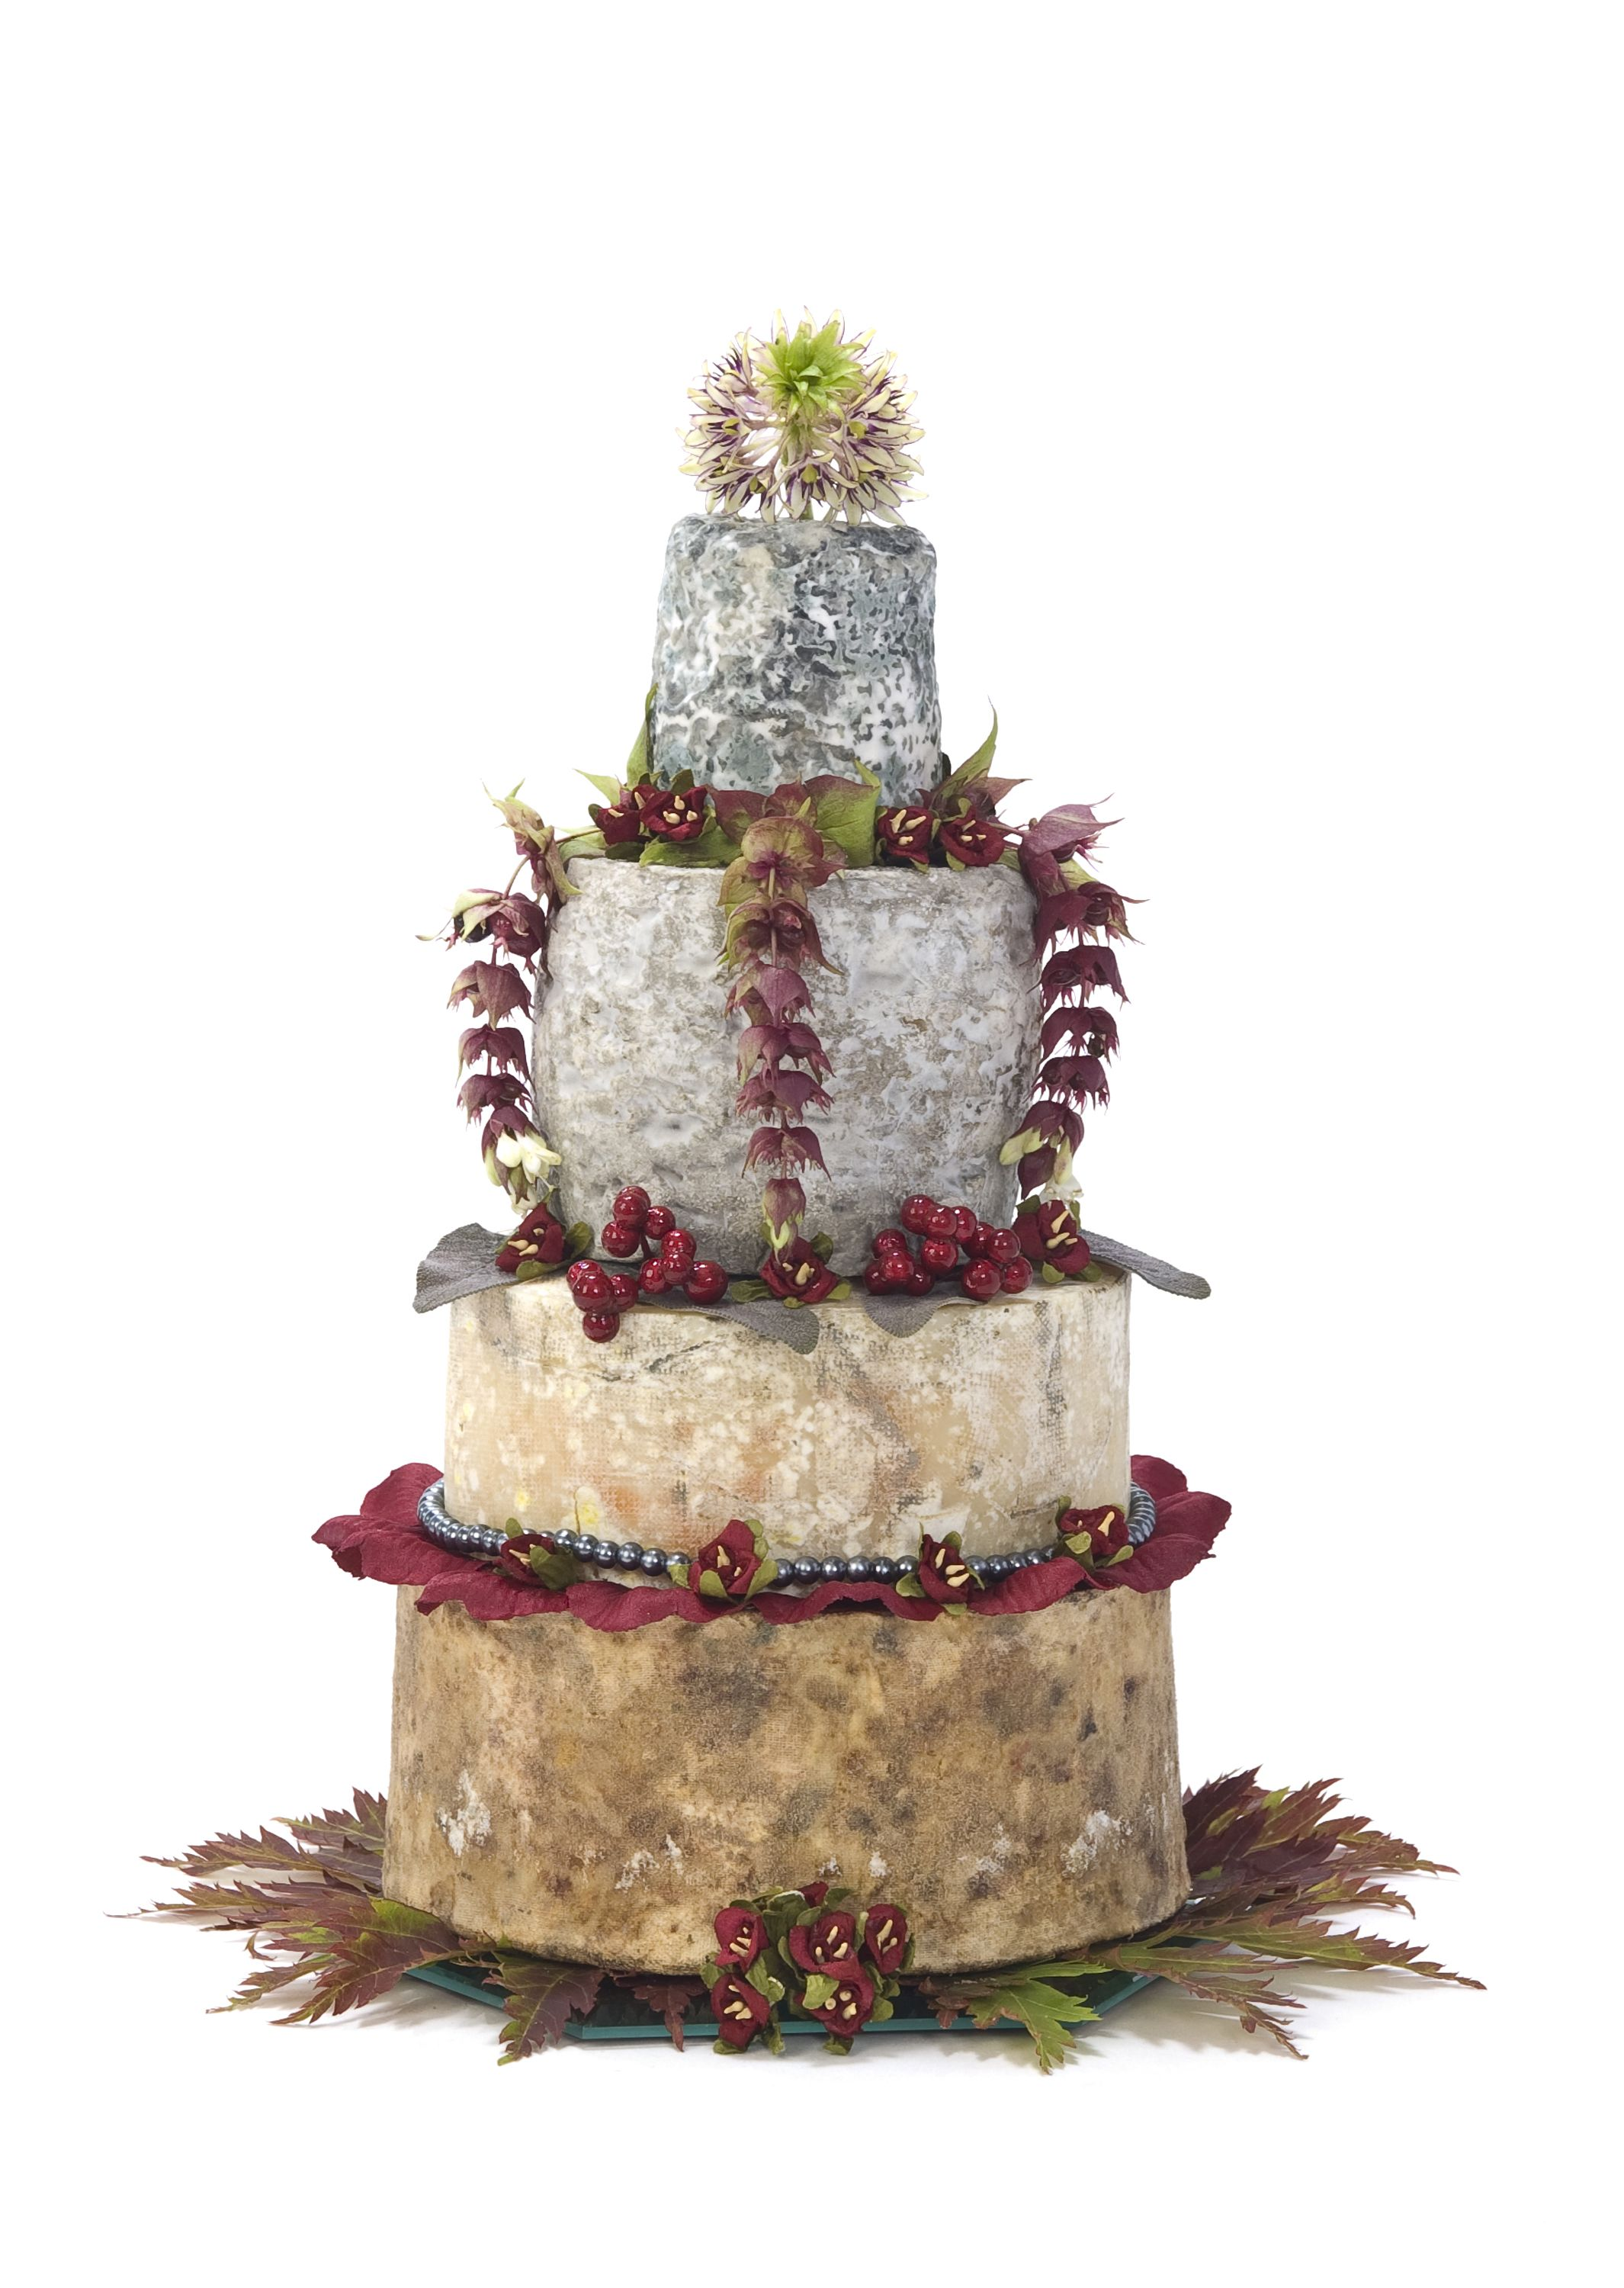 Tintagel Castle, The Cheese Shed | Cheese Wedding Cakes | Pinterest ...